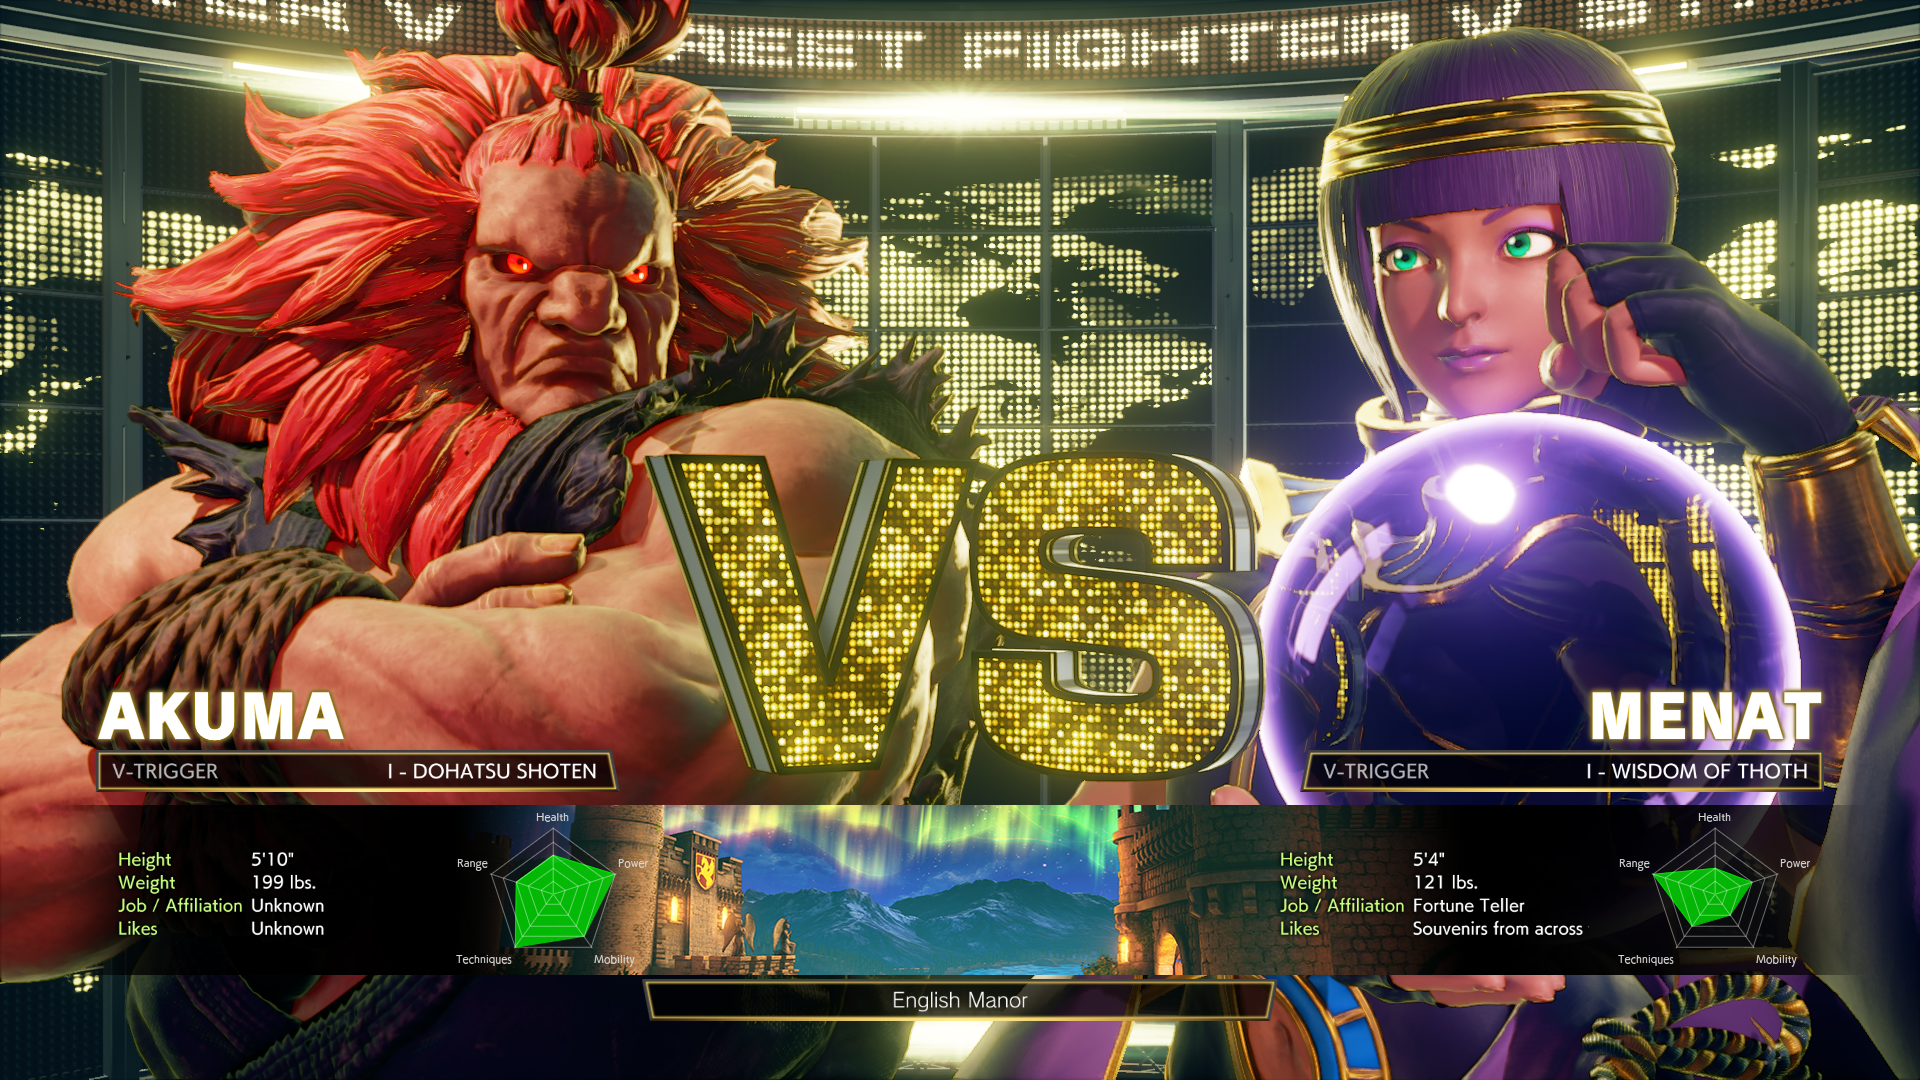 Street Fighter V: Arcade Edition - Akuma vs. Menat